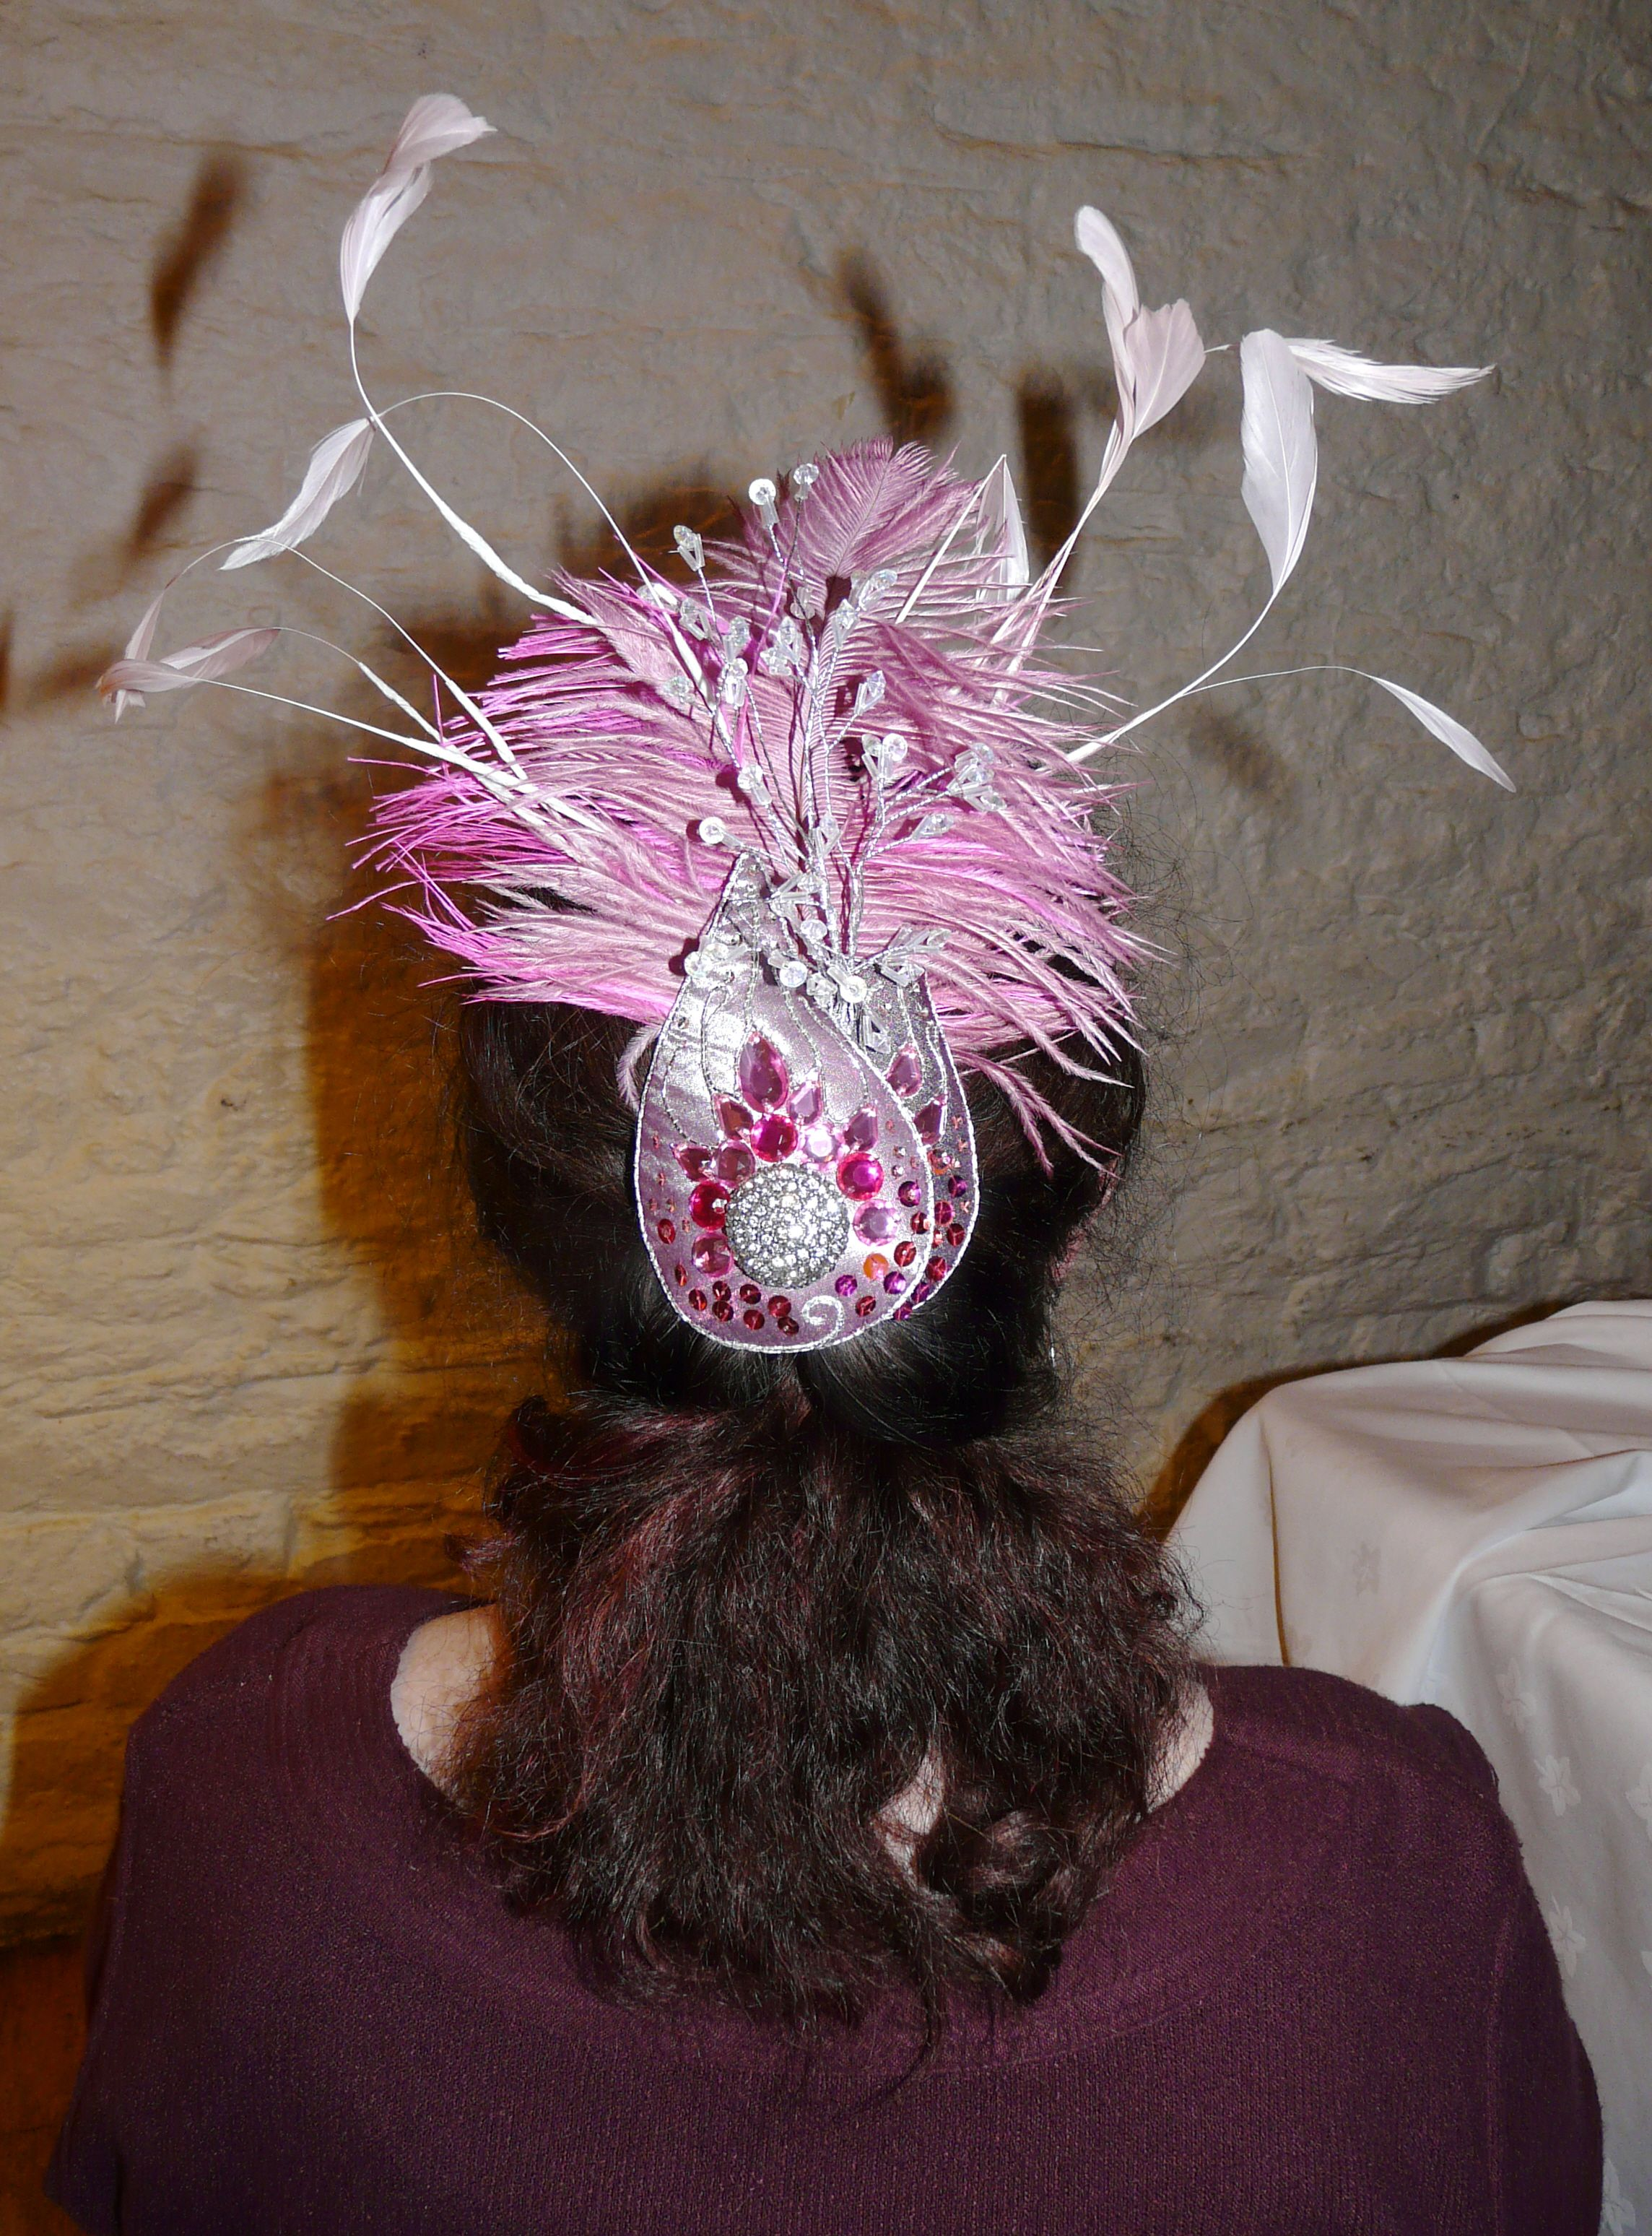 Fascinator. 3-D embroidery. Purchased diamante embellishment and wired sparkles. Plastic gems, feathers.